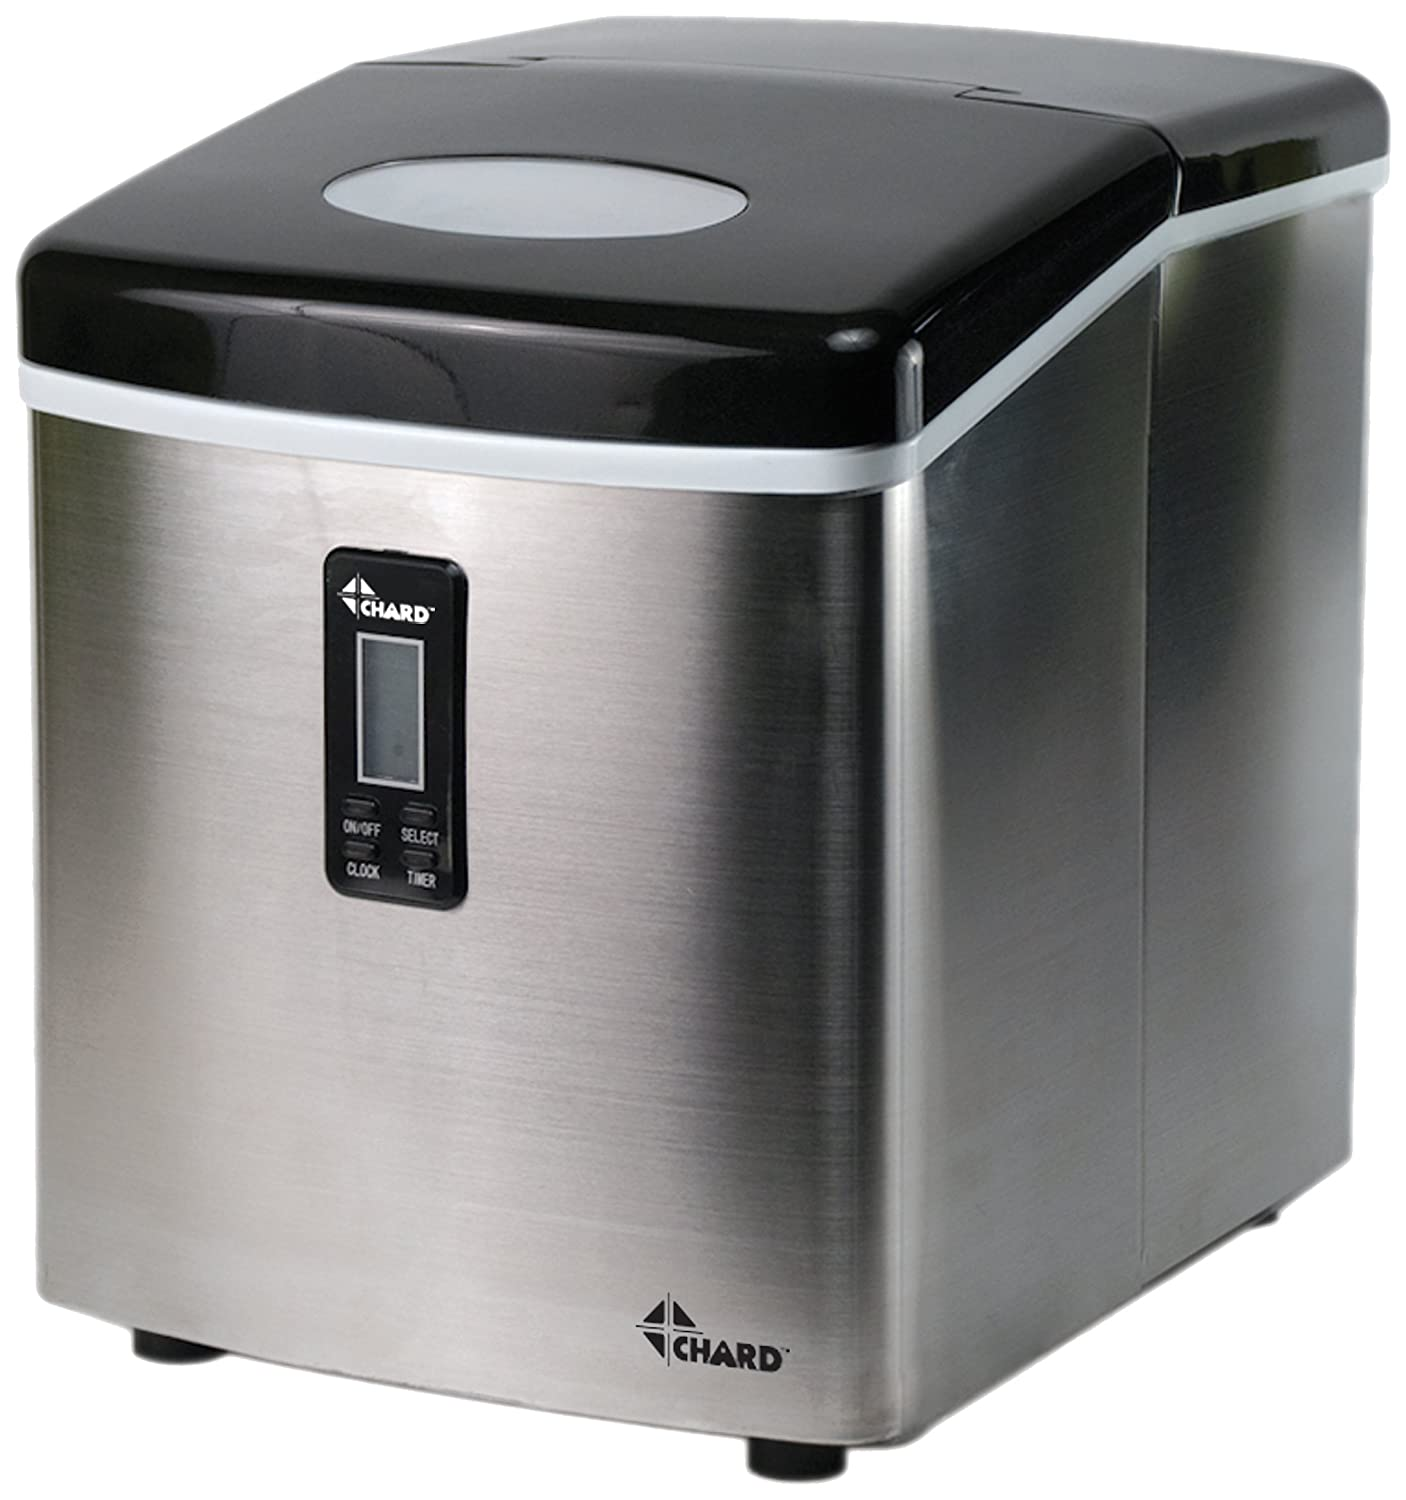 Chard IM-12SS, Ice Maker with LCD Display, Stainless Steel, 35lbs